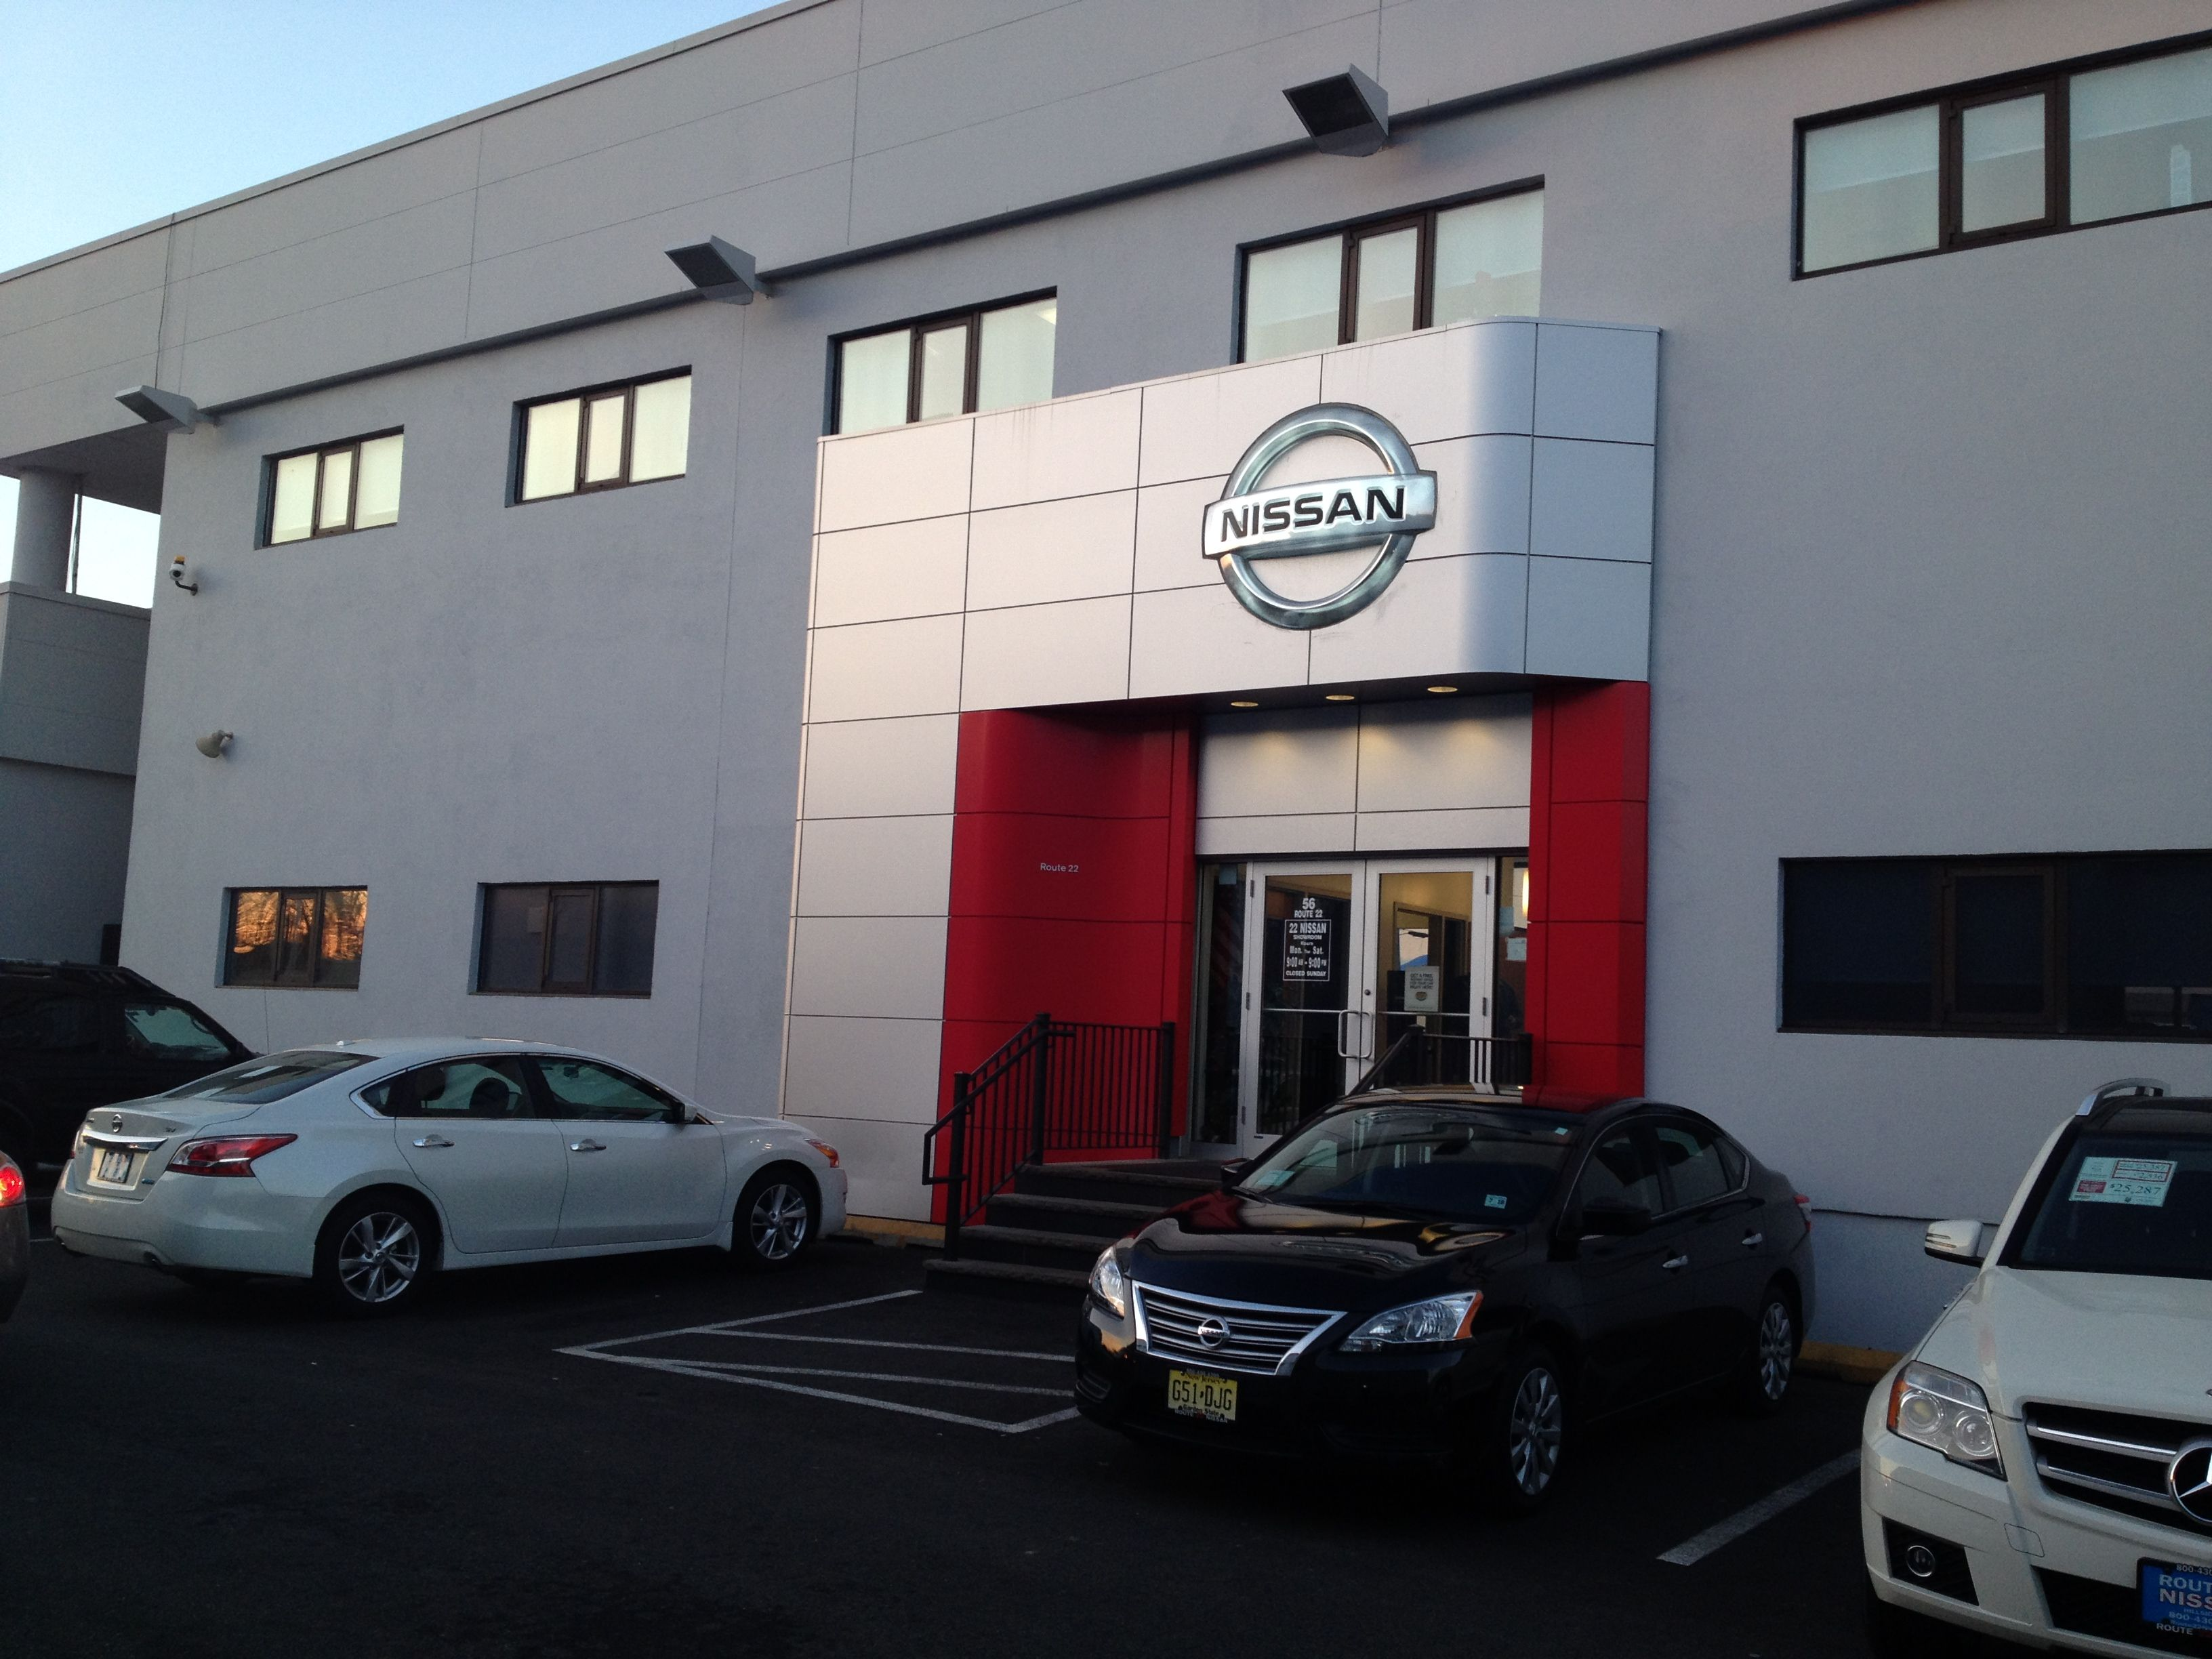 The entrance to Route 22 Nissan showroom e to our massive